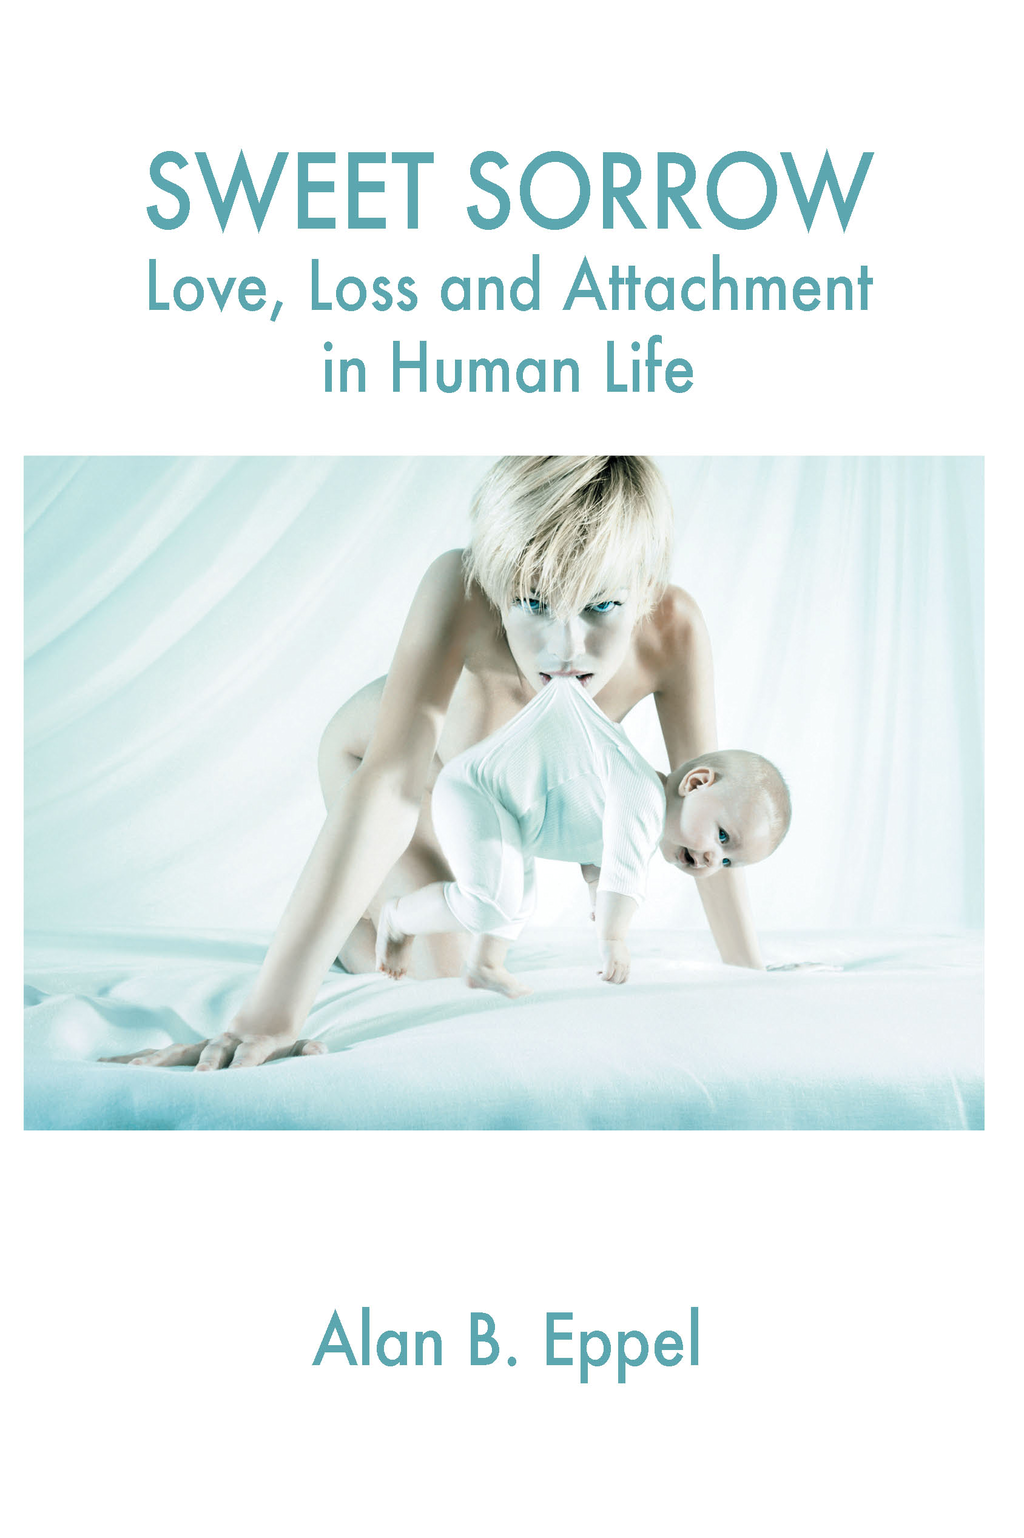 Sweet Sorrow: Love, Loss and Attachment in Human Life